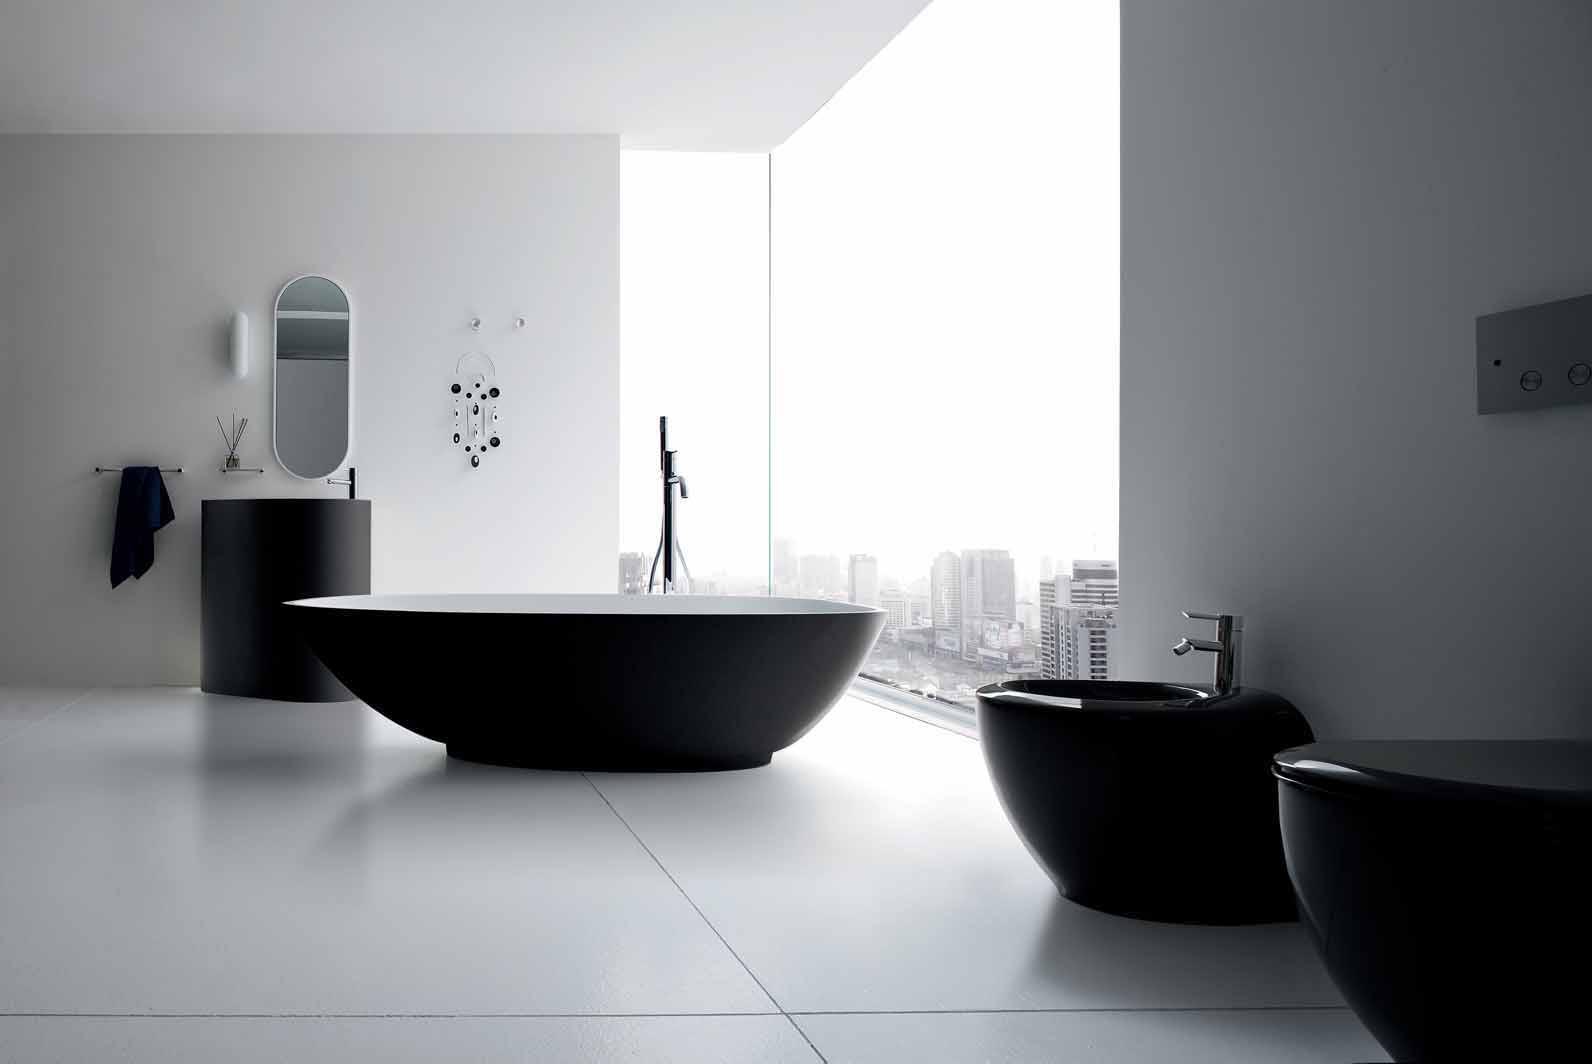 Bathroom-Styles-Design-Ideas-other-bathroom-delightful-white-modern-bathroom-design-ideas-with-modern-round-bathtub-and-black-toilet-modern-black-bathroom-photos